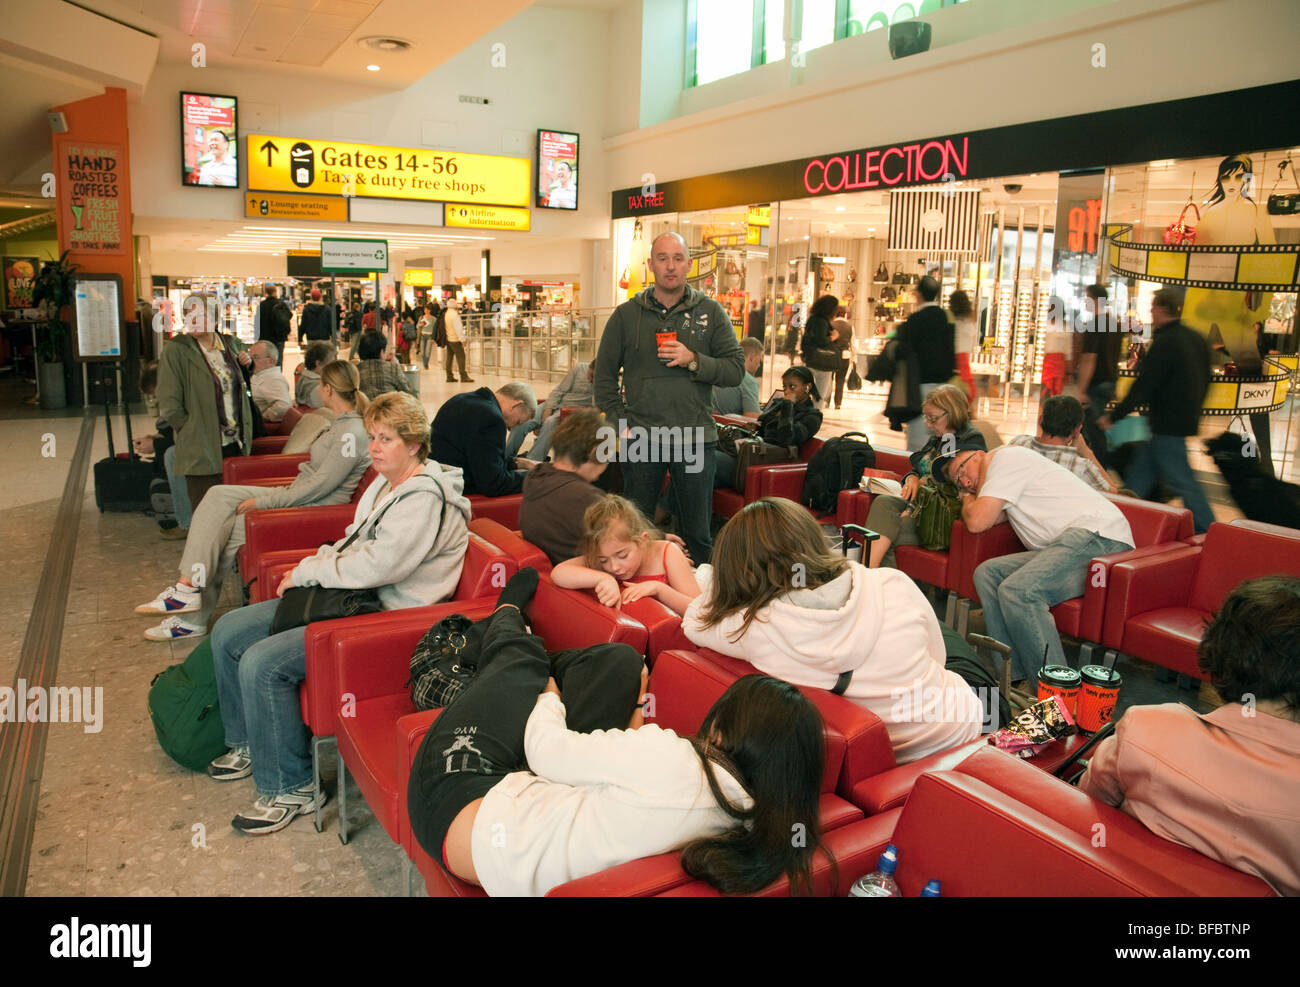 Tired airline travellers resting in the departure lounge, Terminal One, Heathrow airport, London, UK - Stock Image